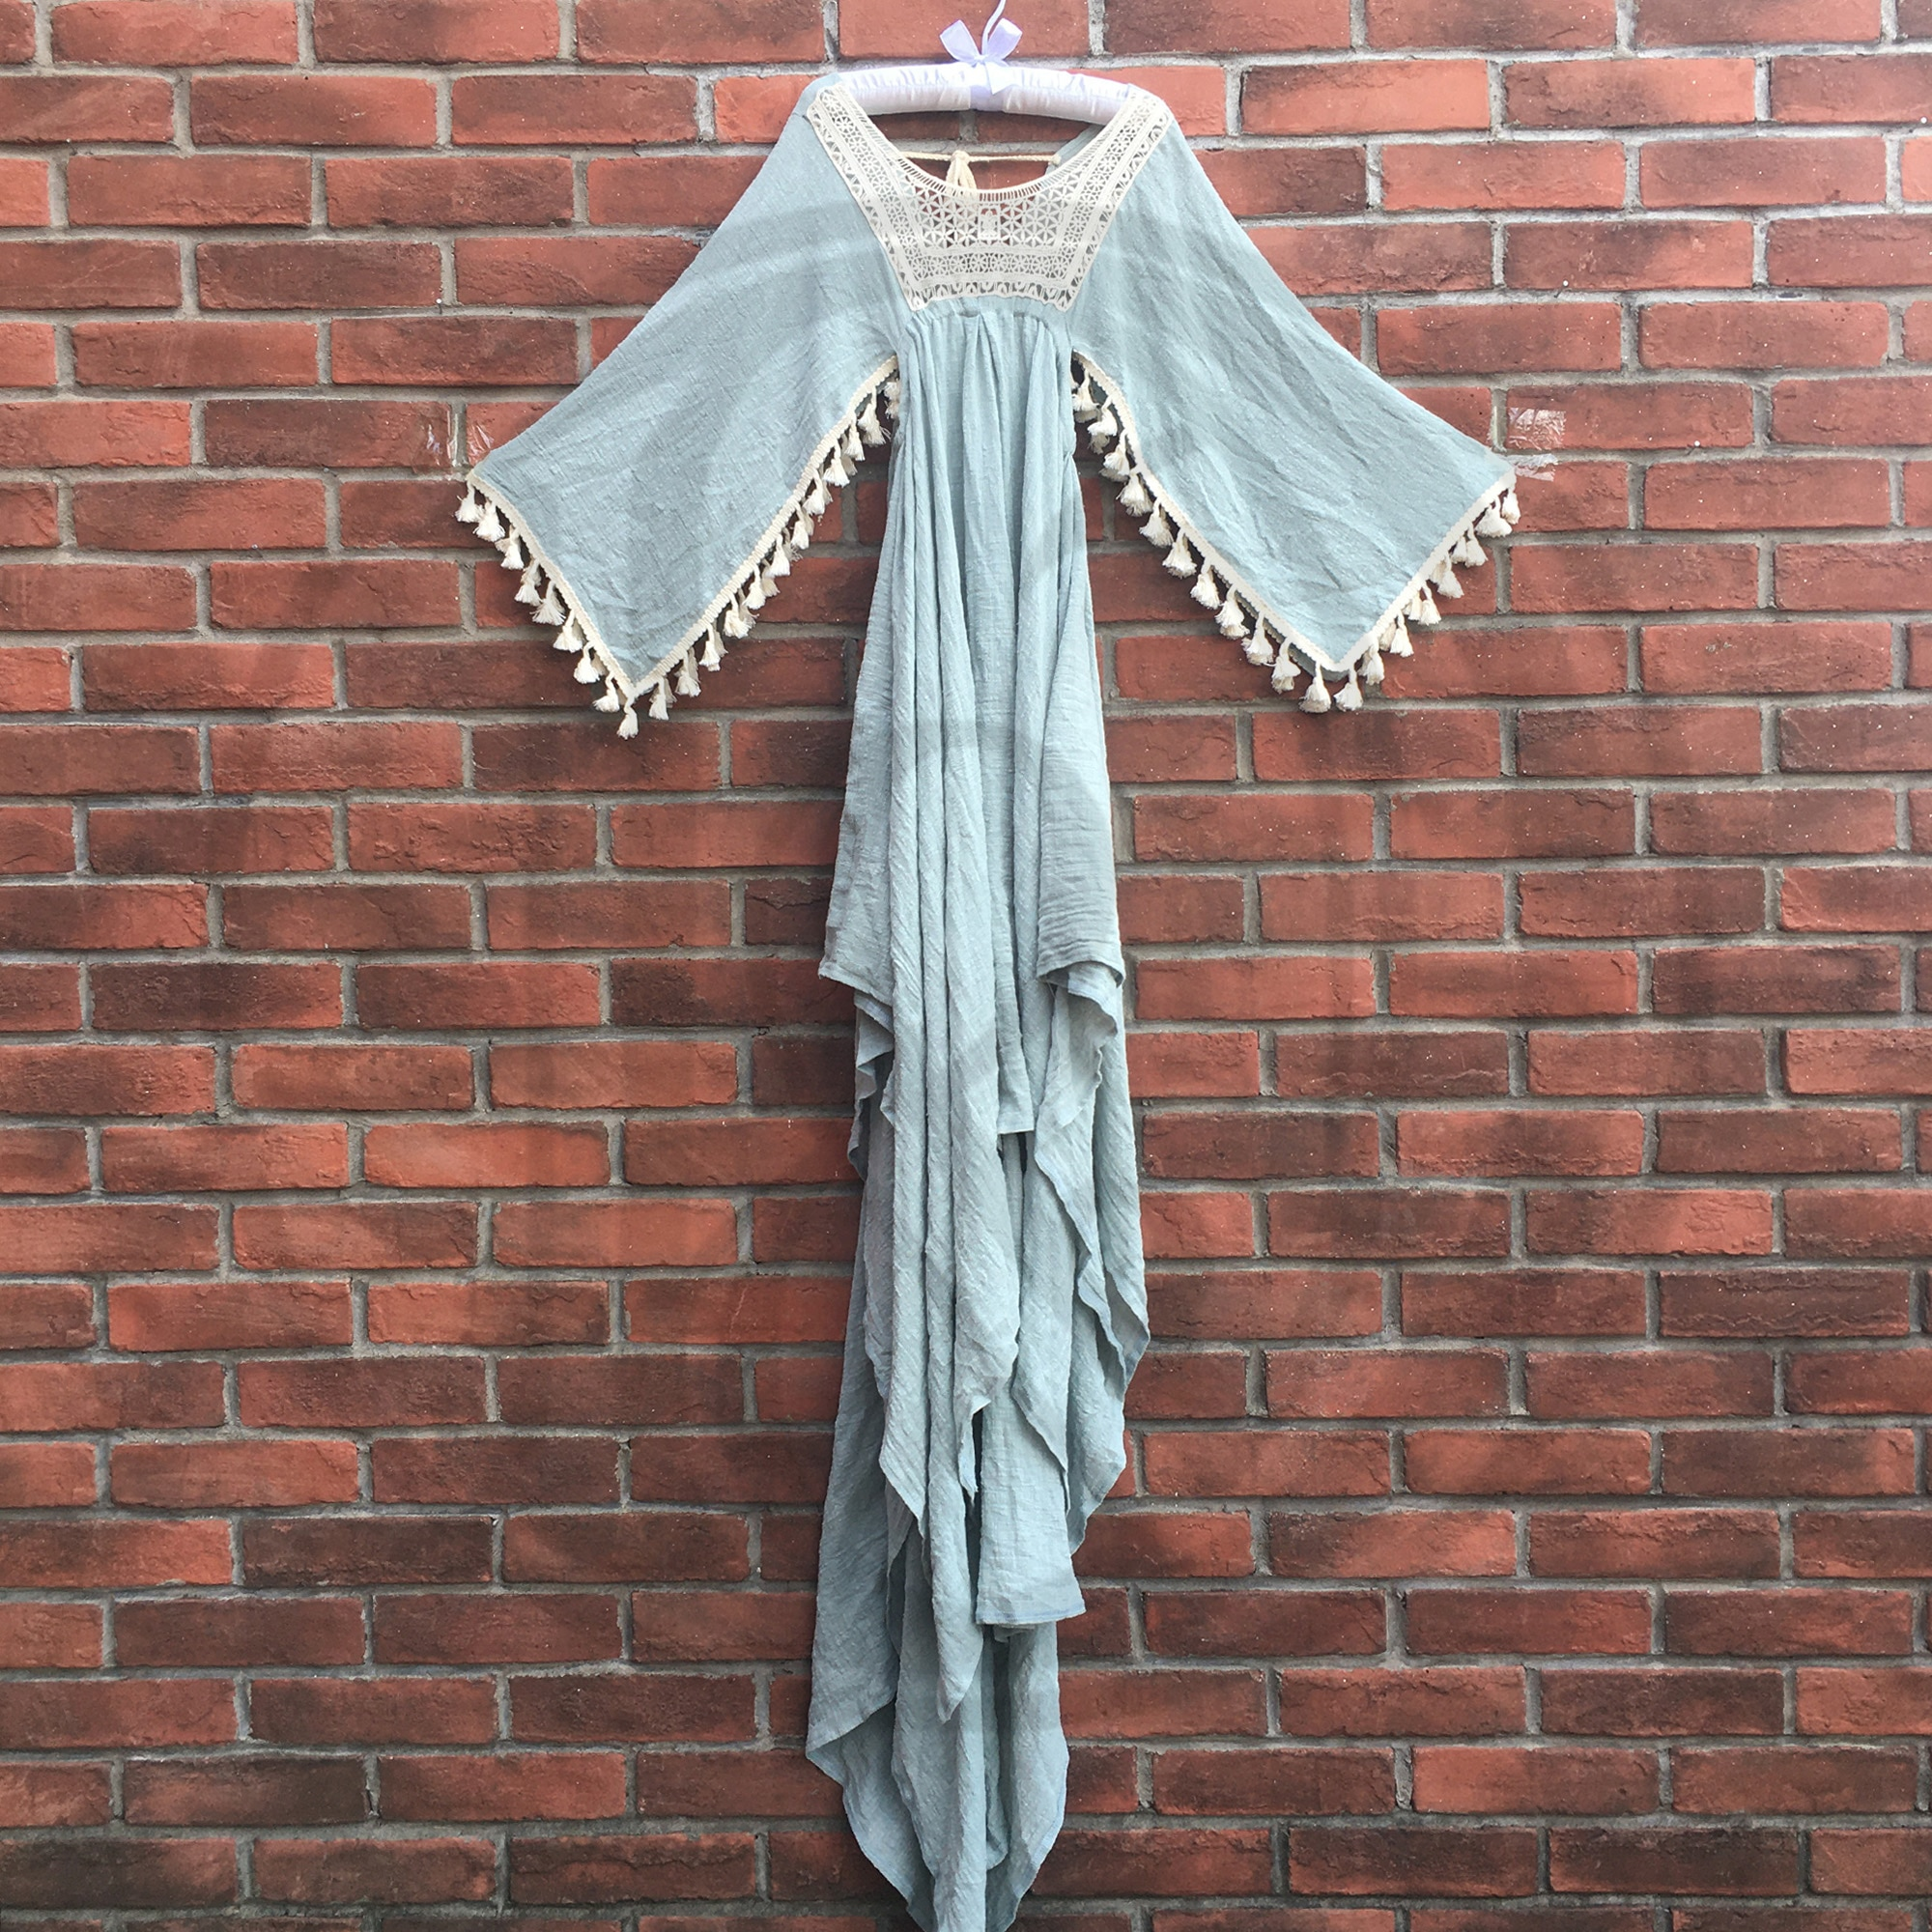 Photo Shoot Sprincess Vintage Embroidery Boho CottonLittle Girl Robe Kid Evening Party Dess for Children Photography Accessories